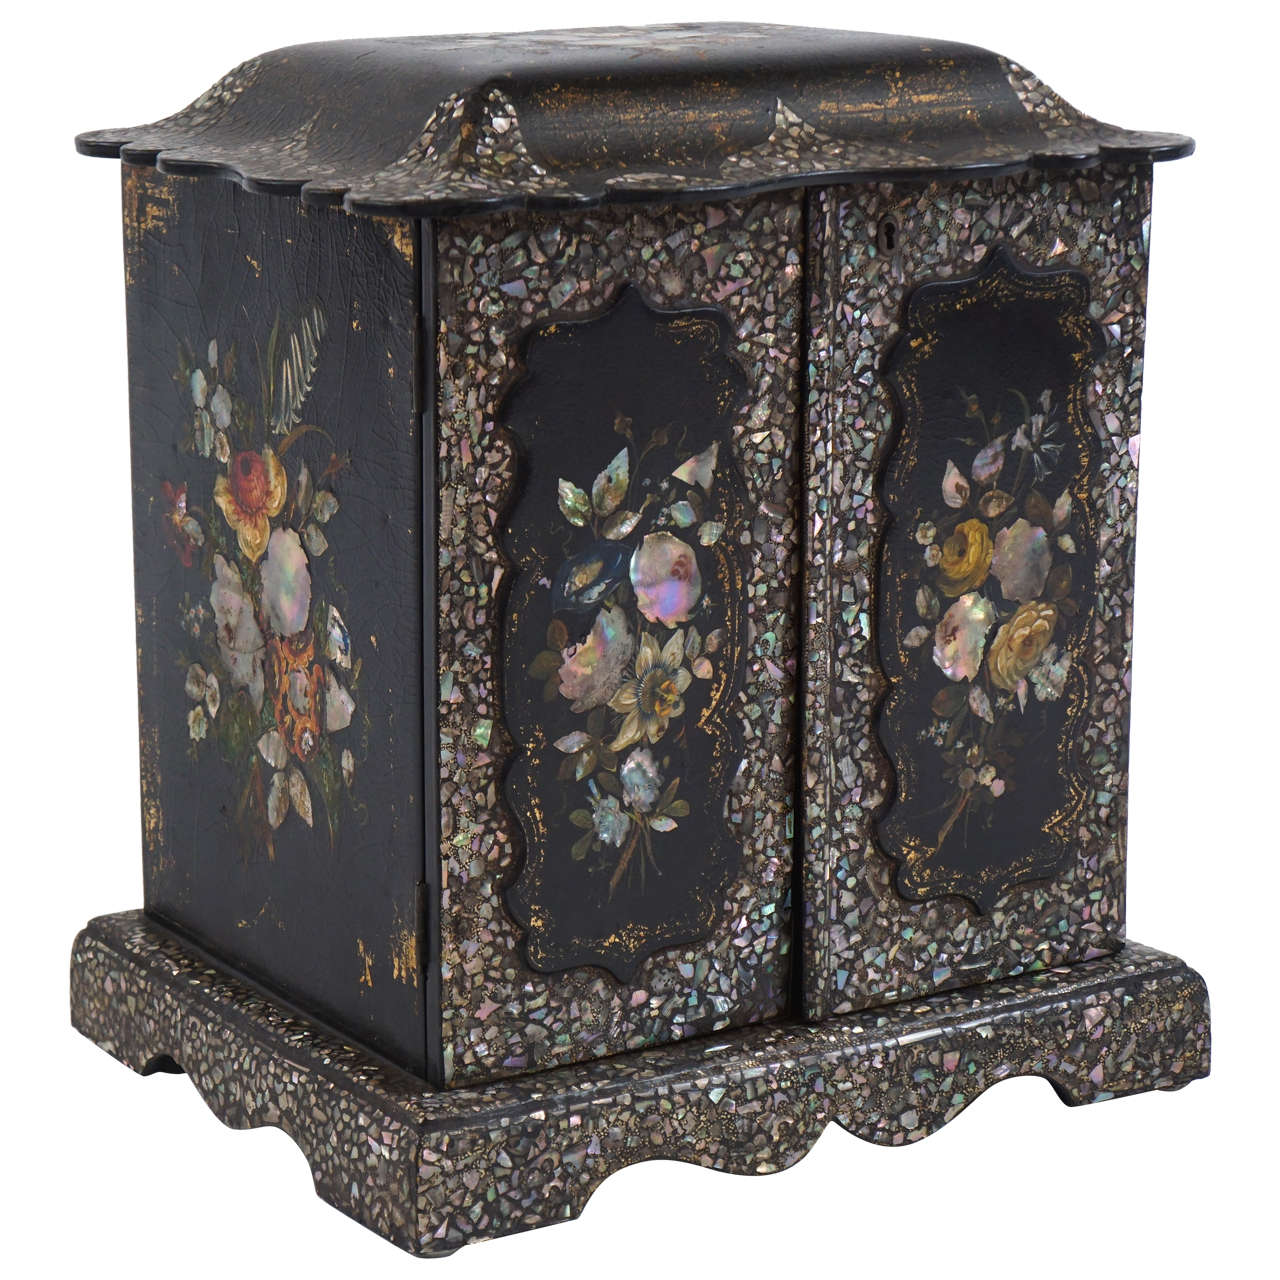 Papier Mâché And Mother Of Pearl Table Cabinet, England Circa 1850 For